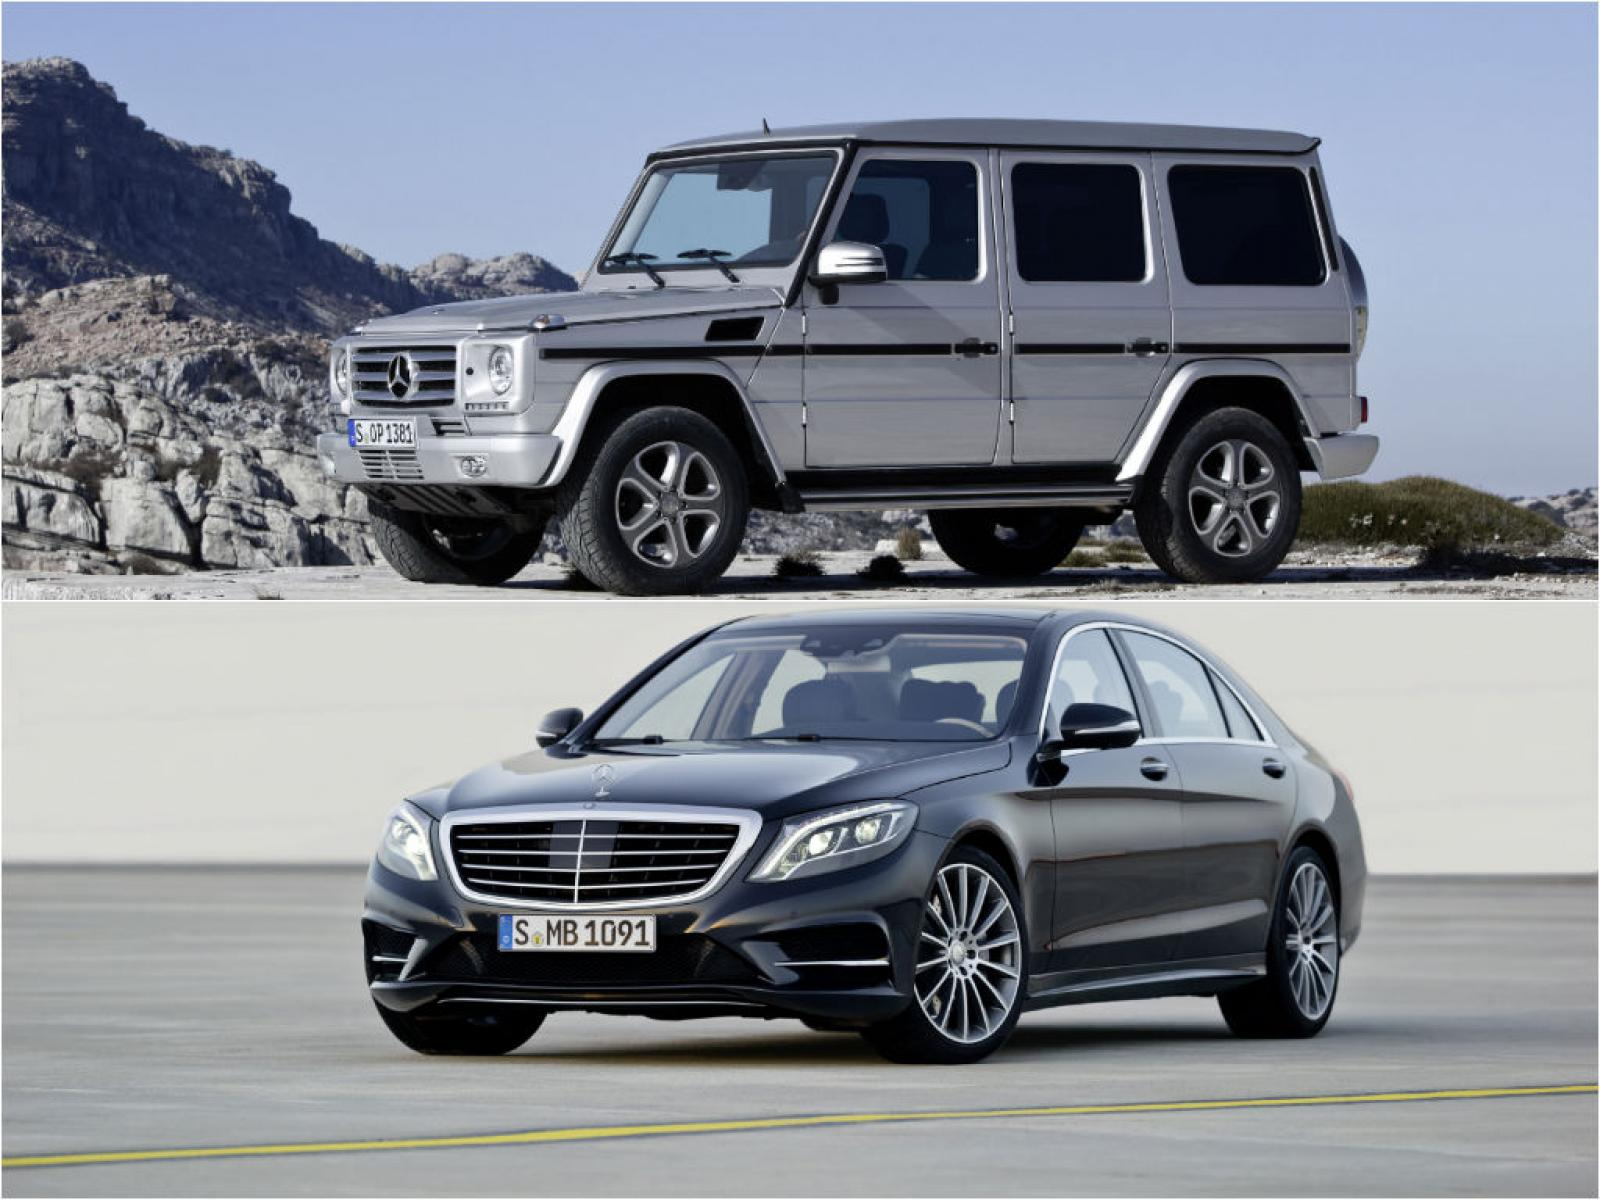 2014 mercedes benz g class information and photos zombiedrive. Cars Review. Best American Auto & Cars Review